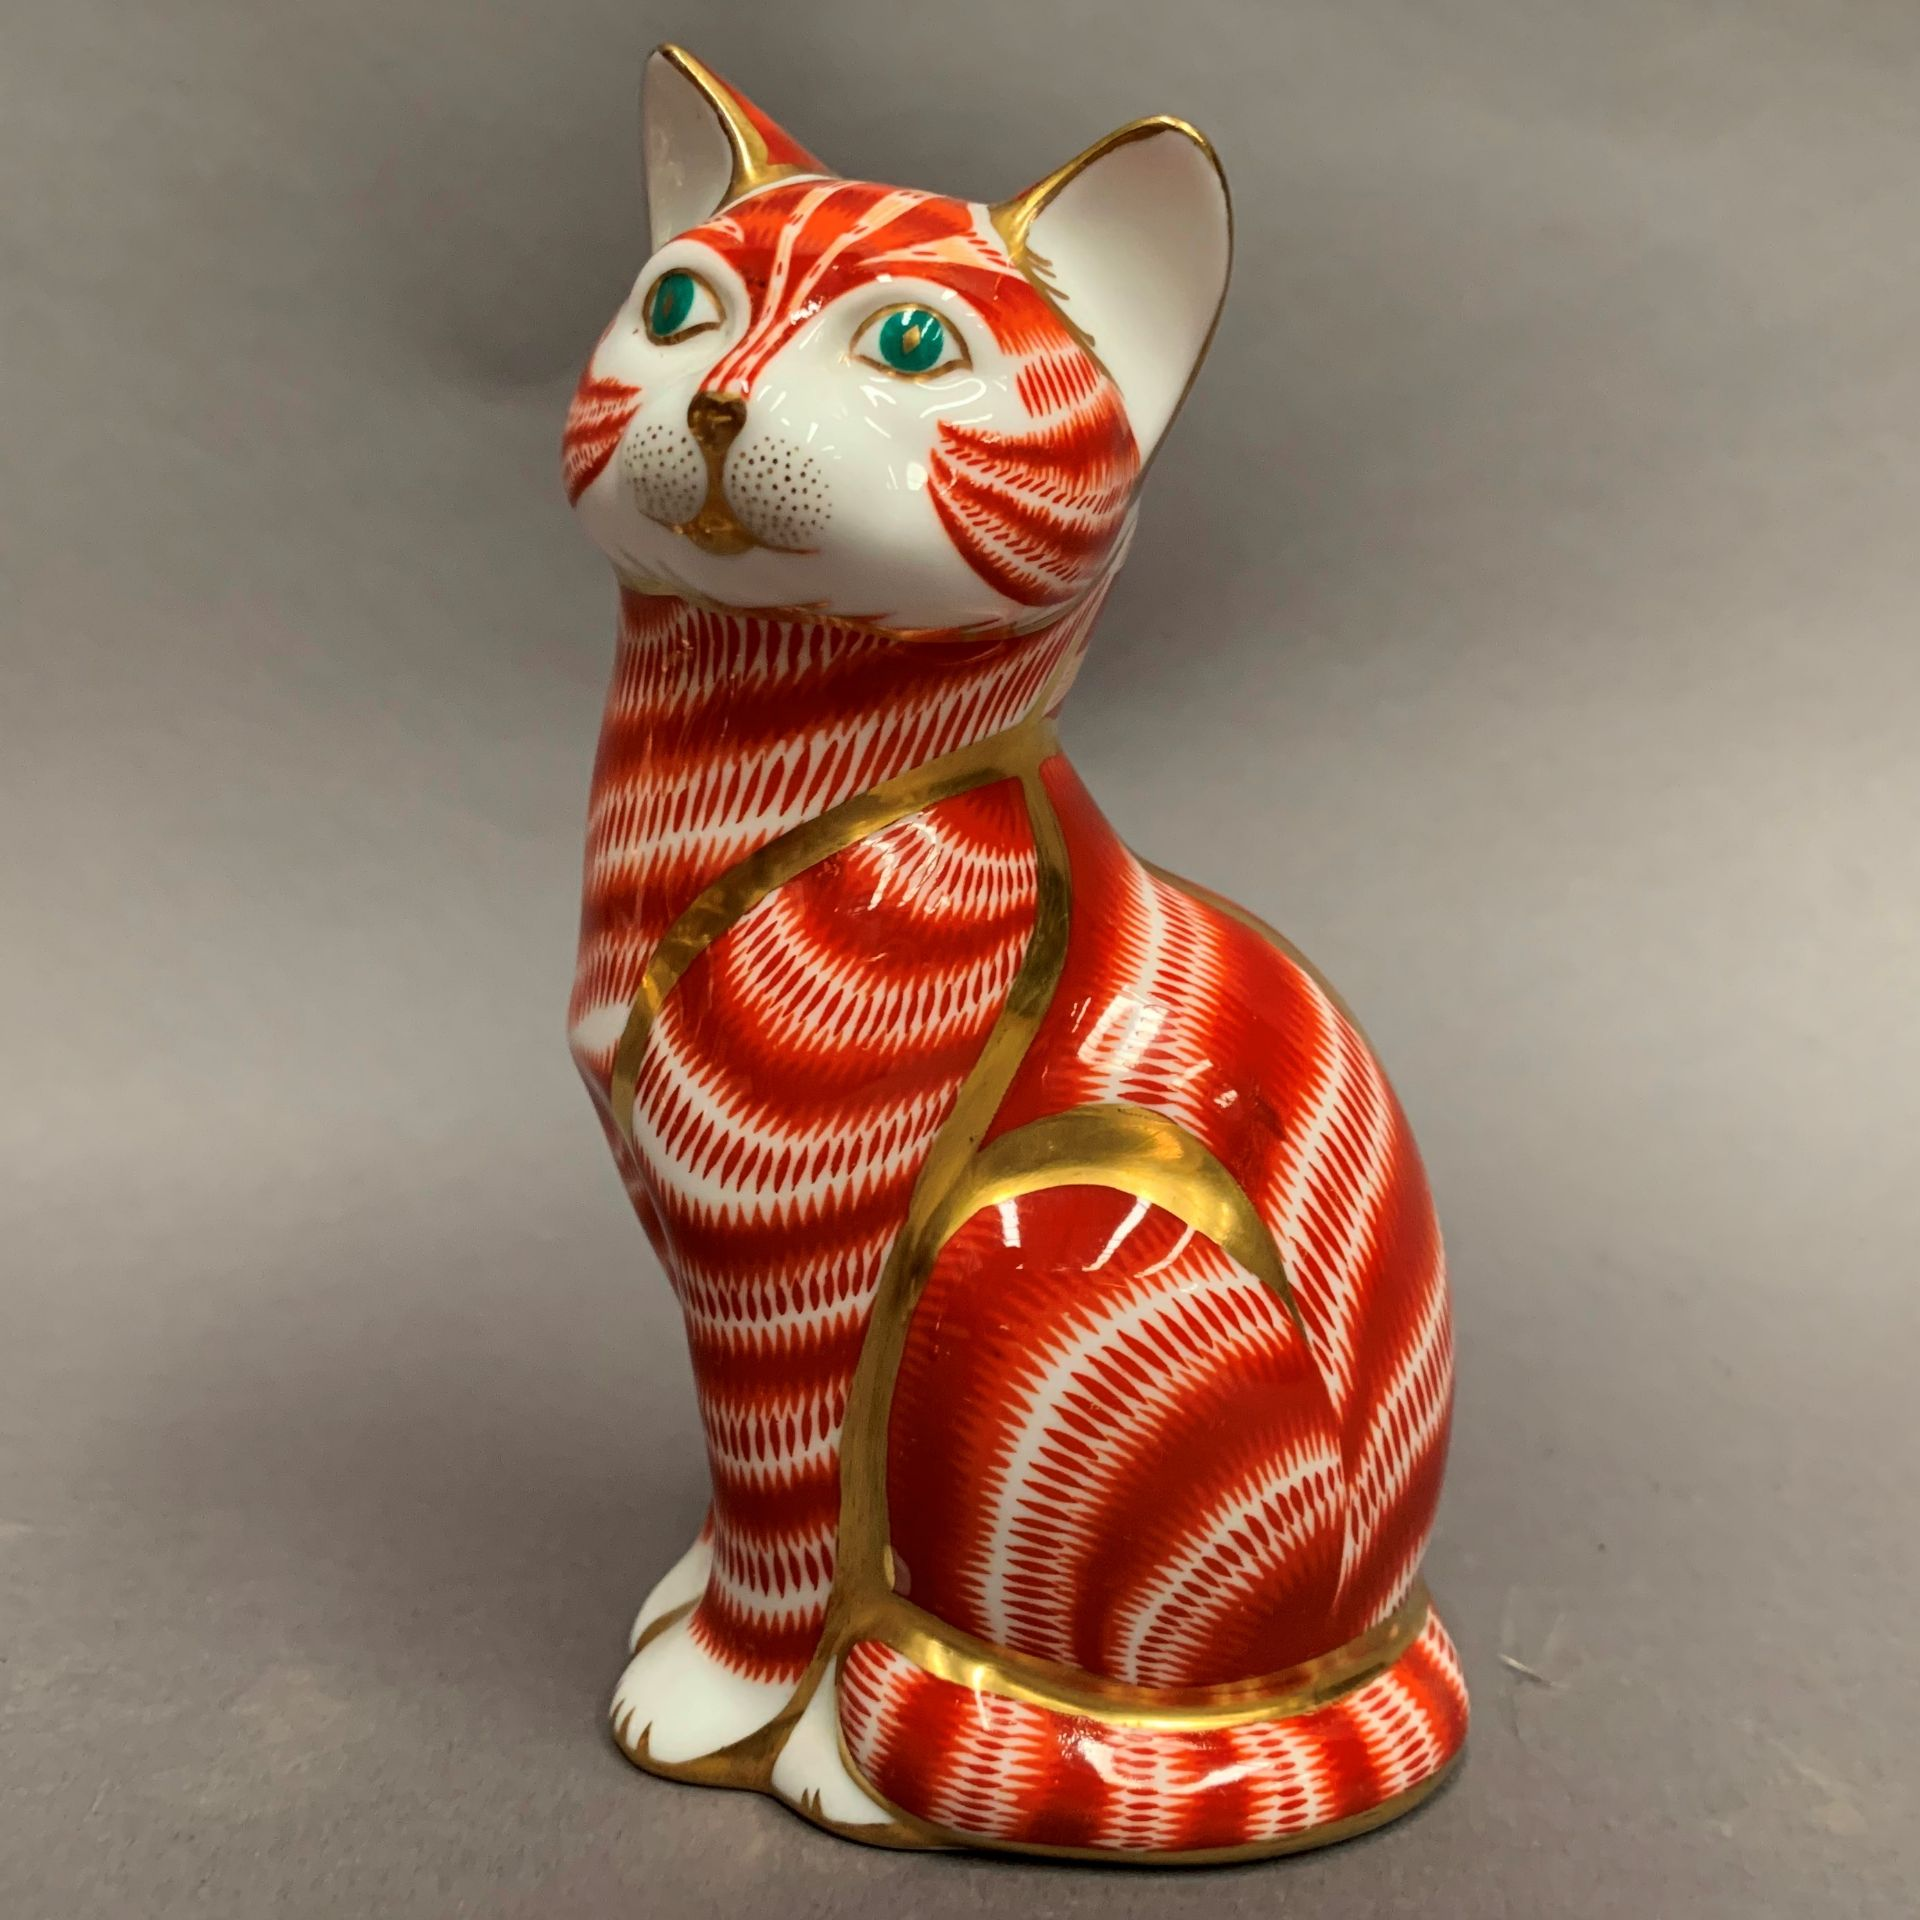 Lot 4 - Royal Crown Derby paperweight modelled as a cat, LVII,